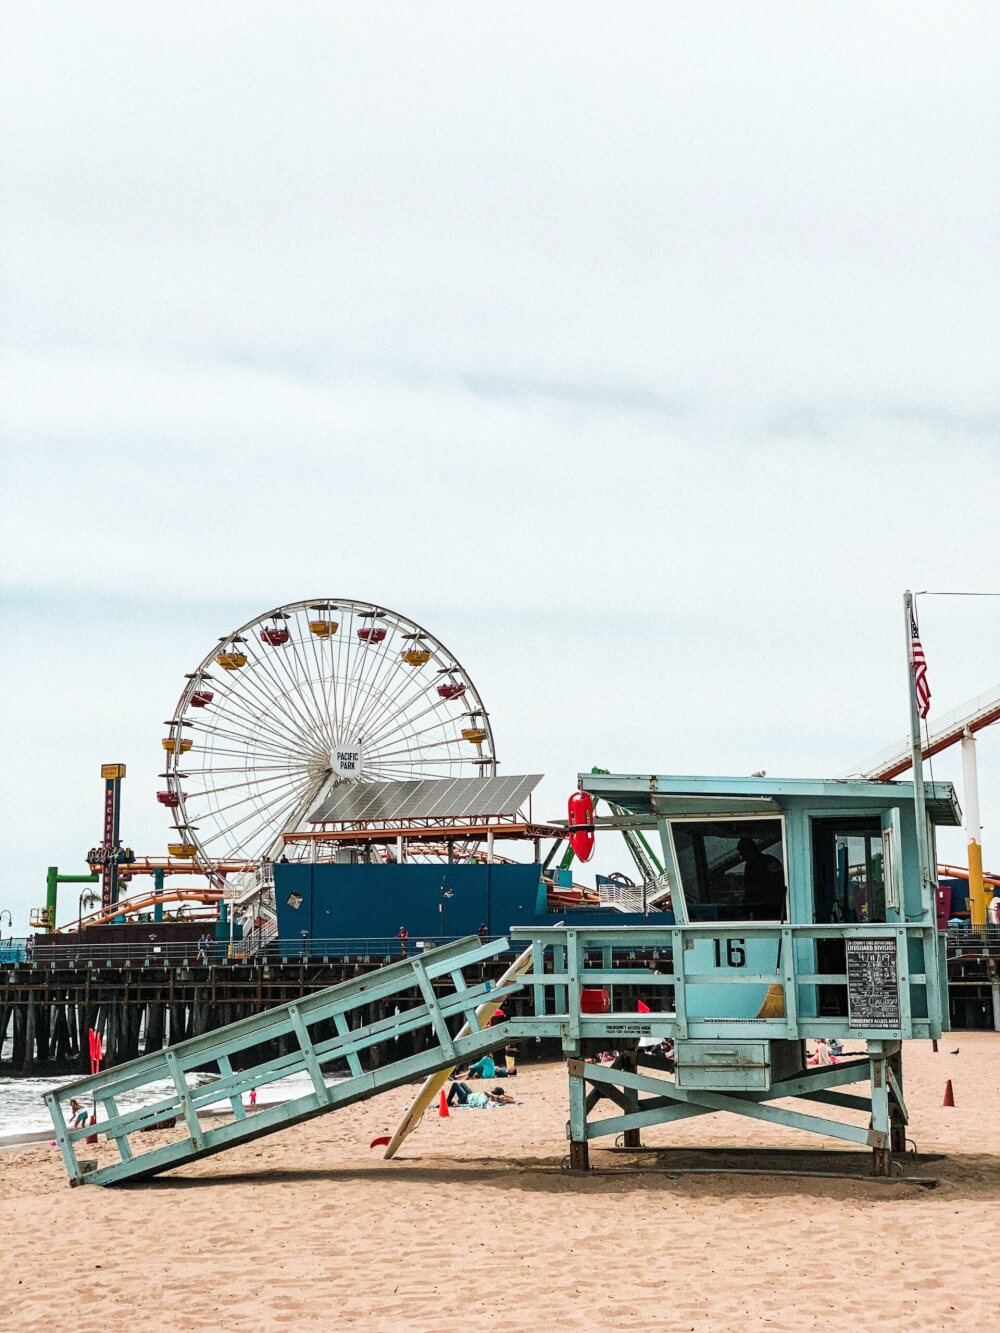 The pacific pier, with all its rides, the Ferris Wheel, and people laying on the beach.